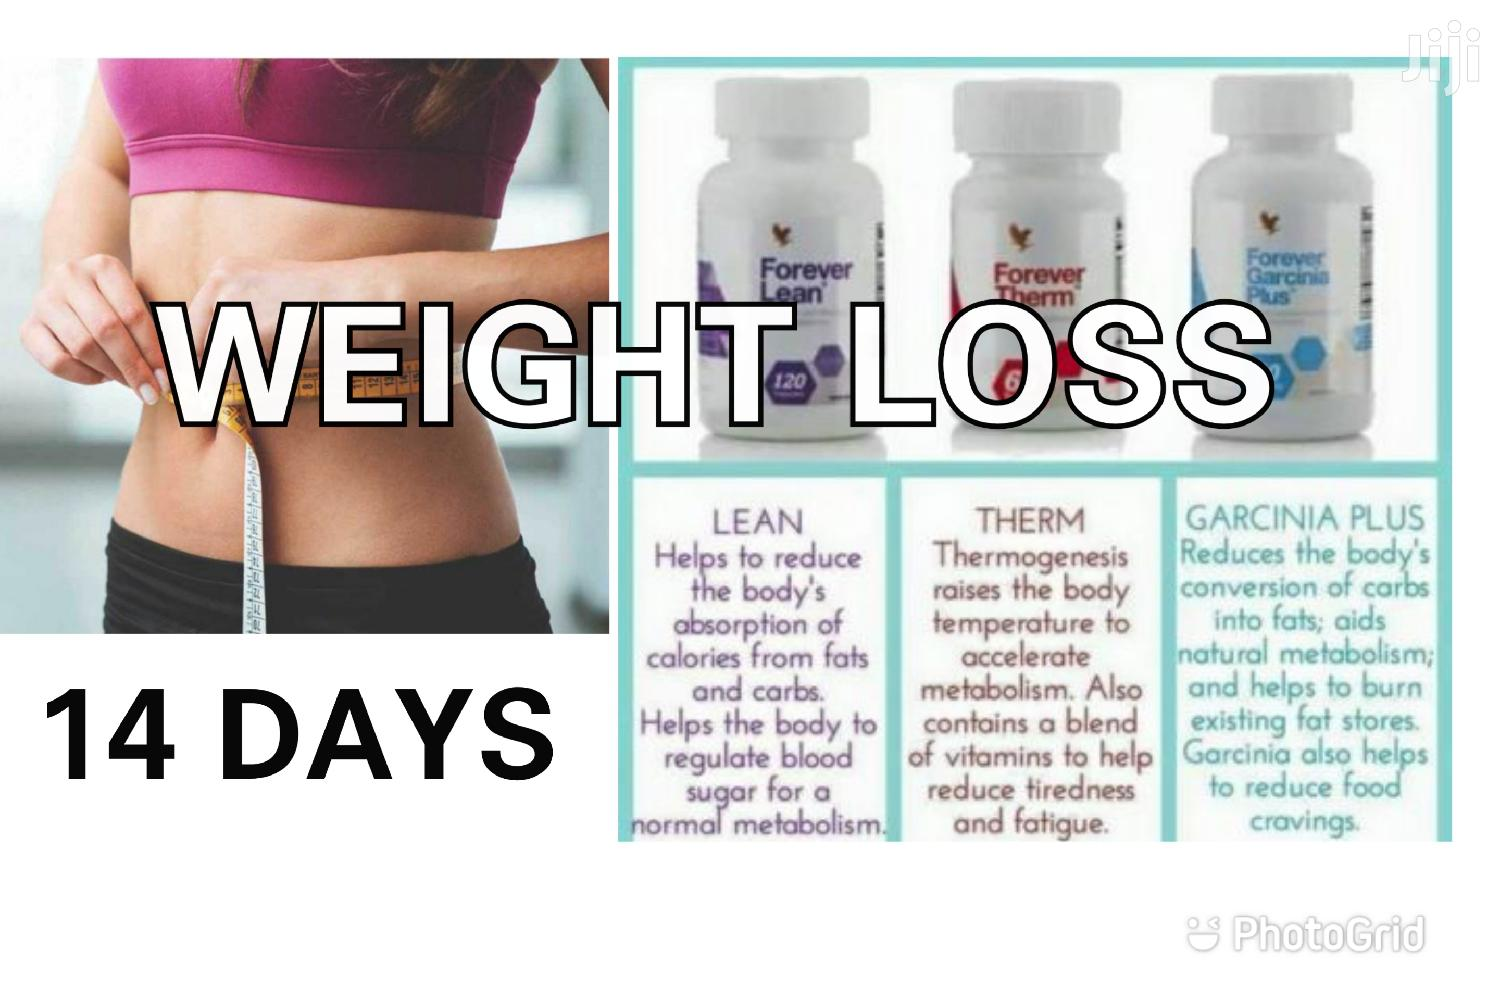 14 Days Weight Loss Package and Flat Tummy